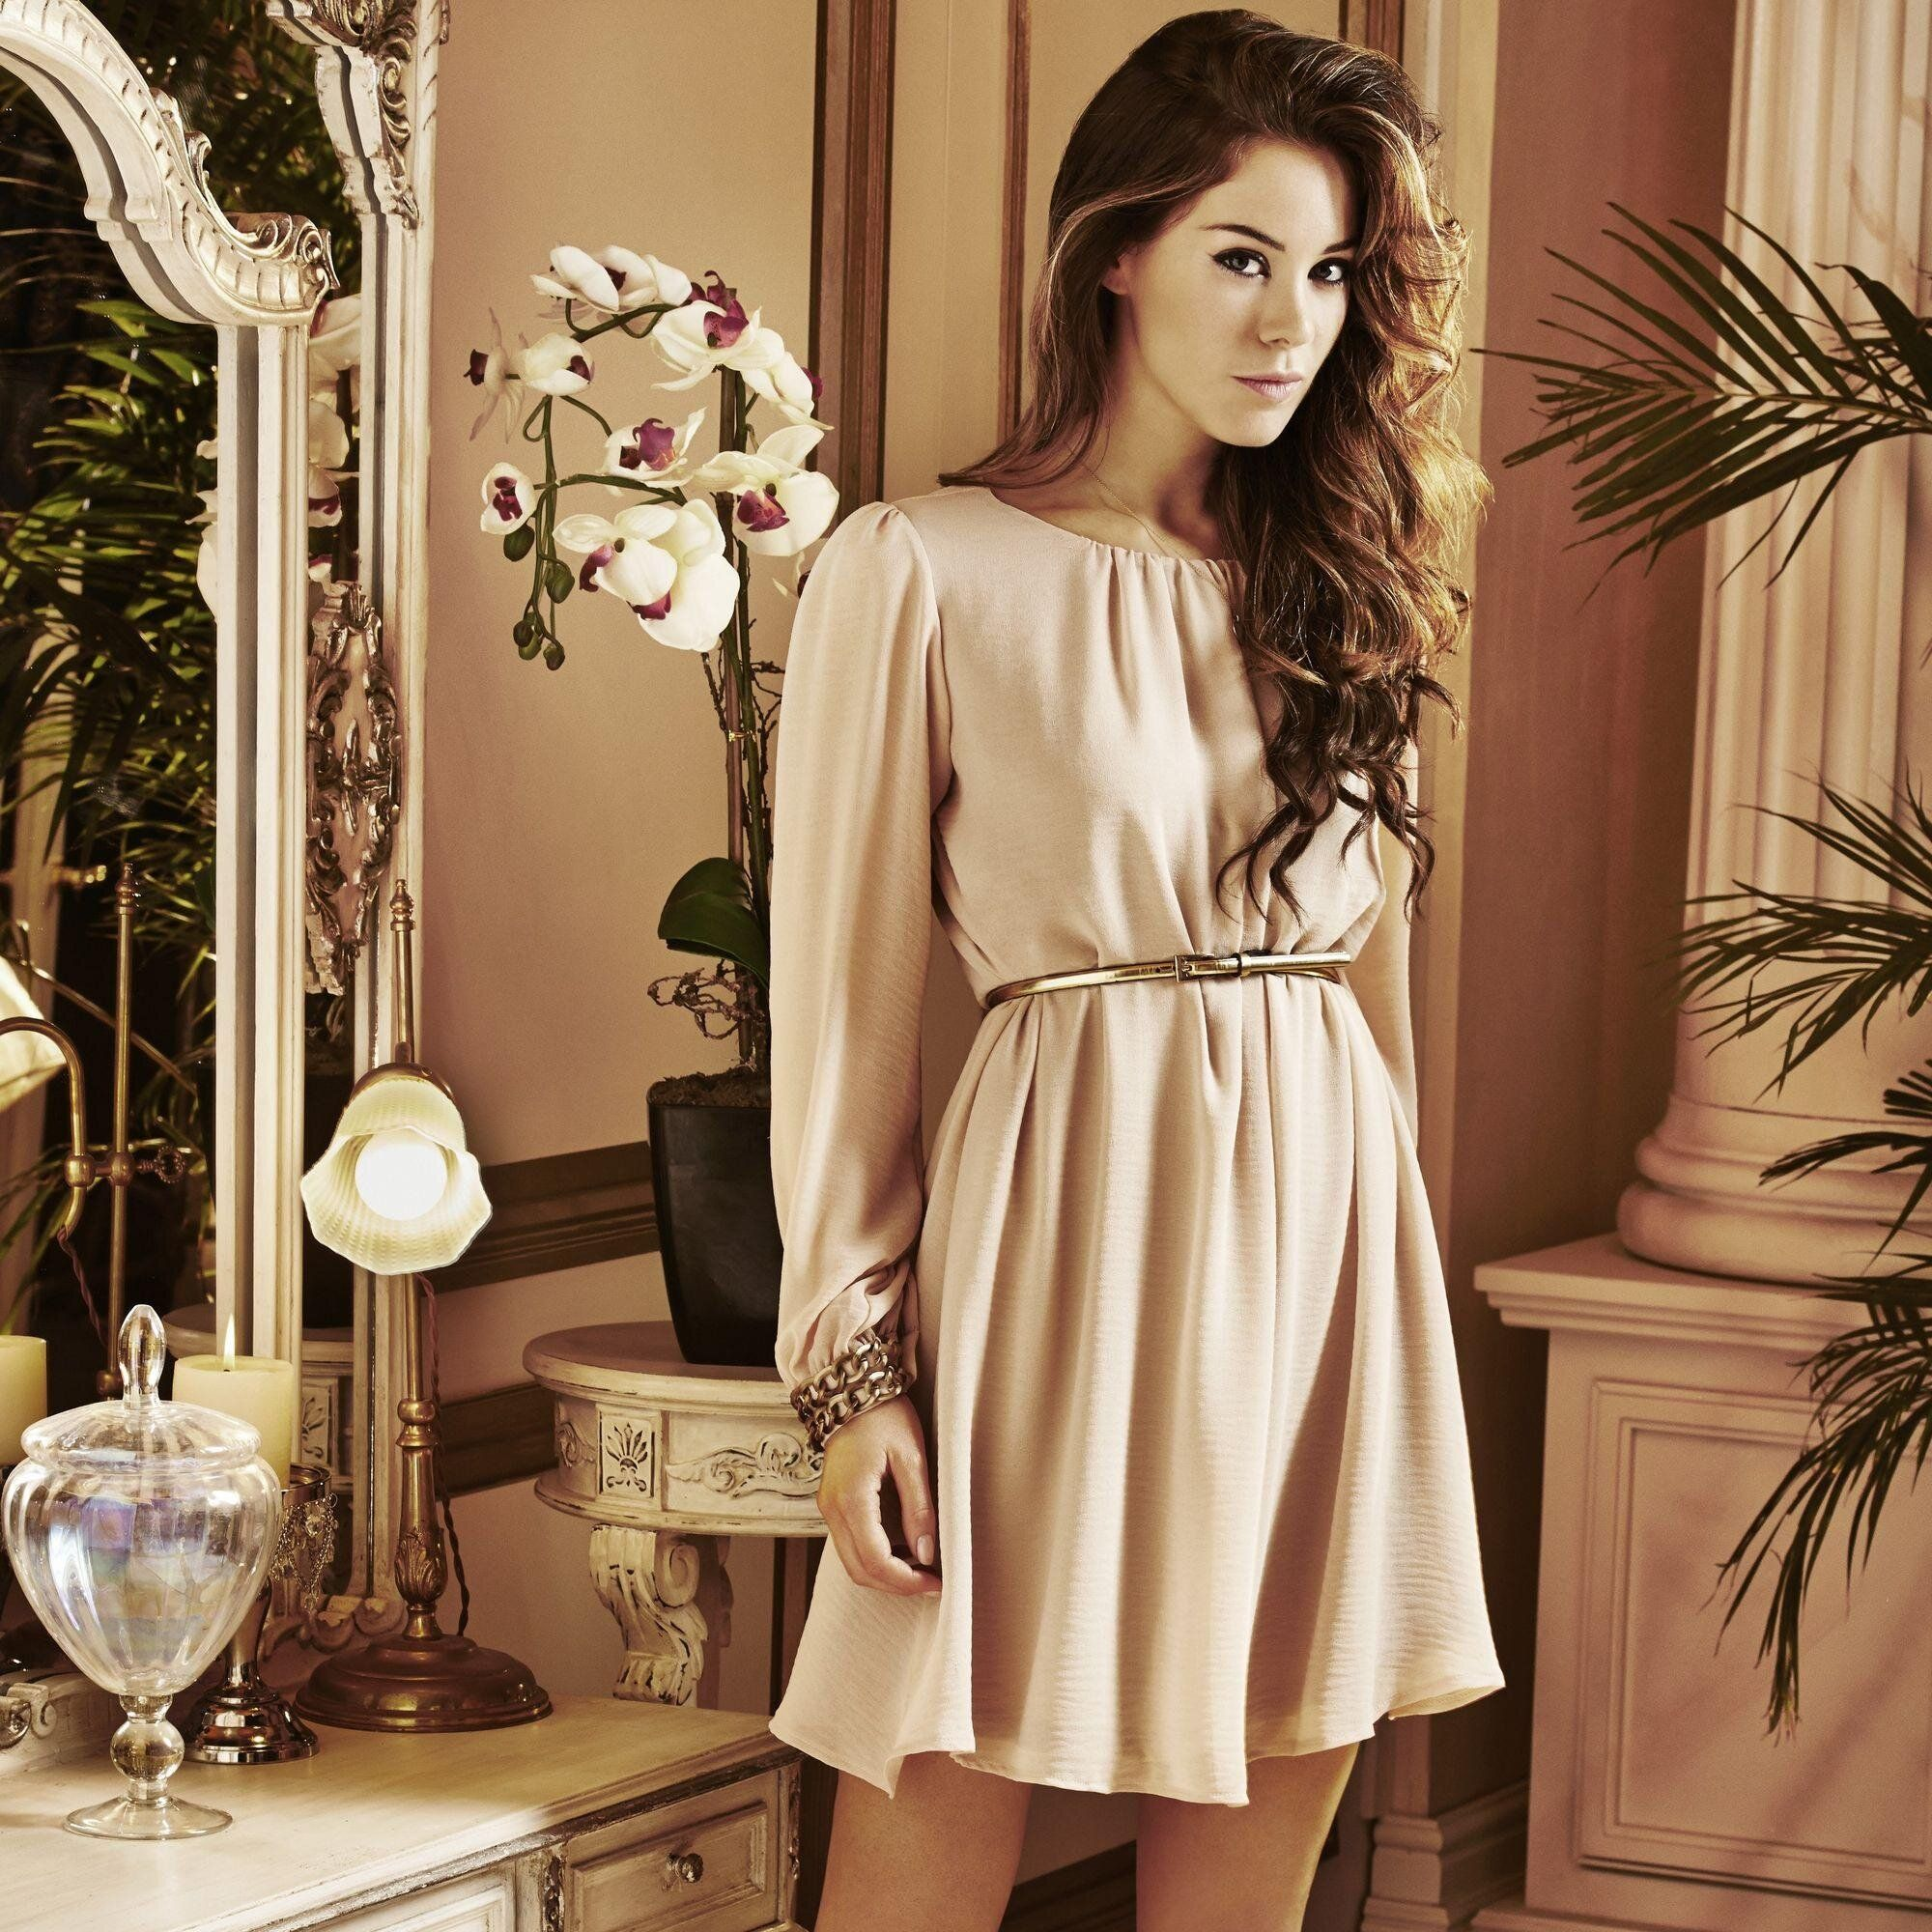 Roxanne McKee on Photoshoot